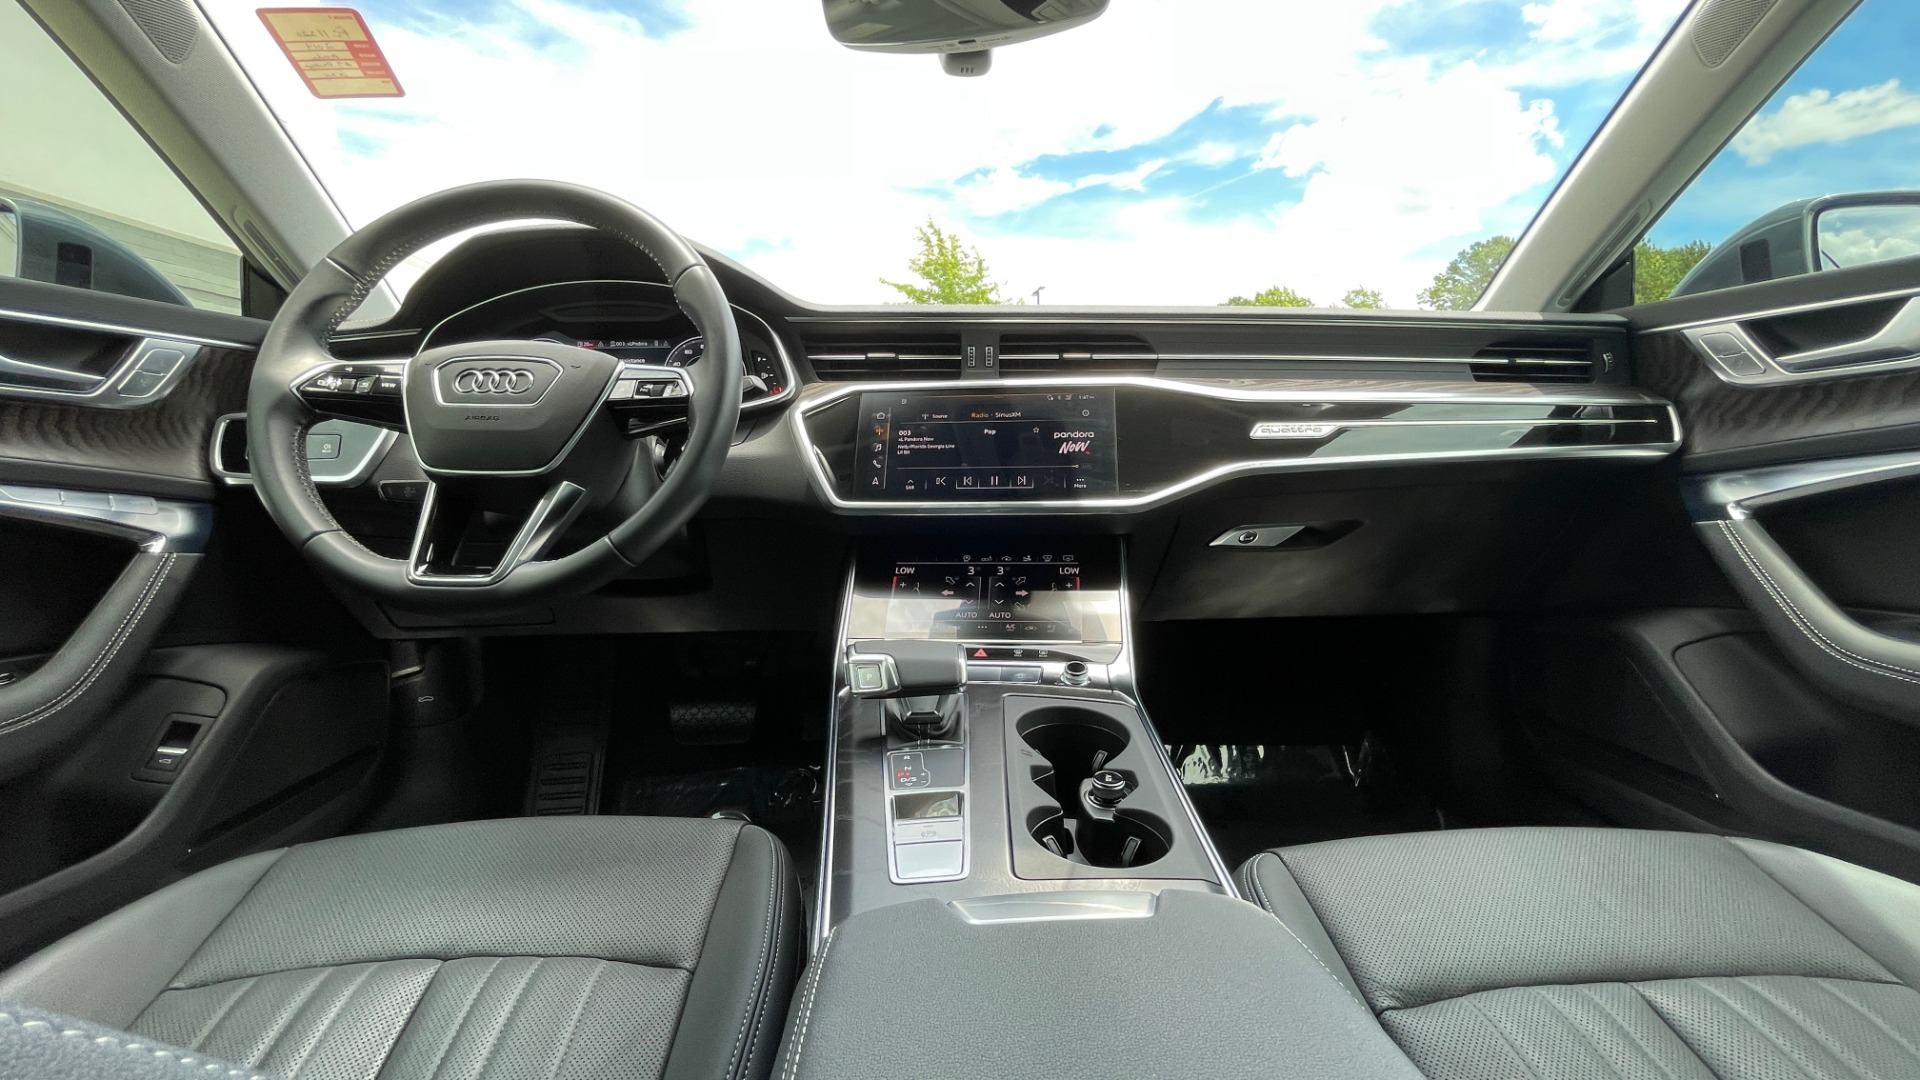 Used 2019 Audi A7 PRESTIGE 55 TFSI 3.0T / NAV / B&O SND / SUNROOF / S-LINE / 21IN WHLS / REAR for sale $66,995 at Formula Imports in Charlotte NC 28227 67